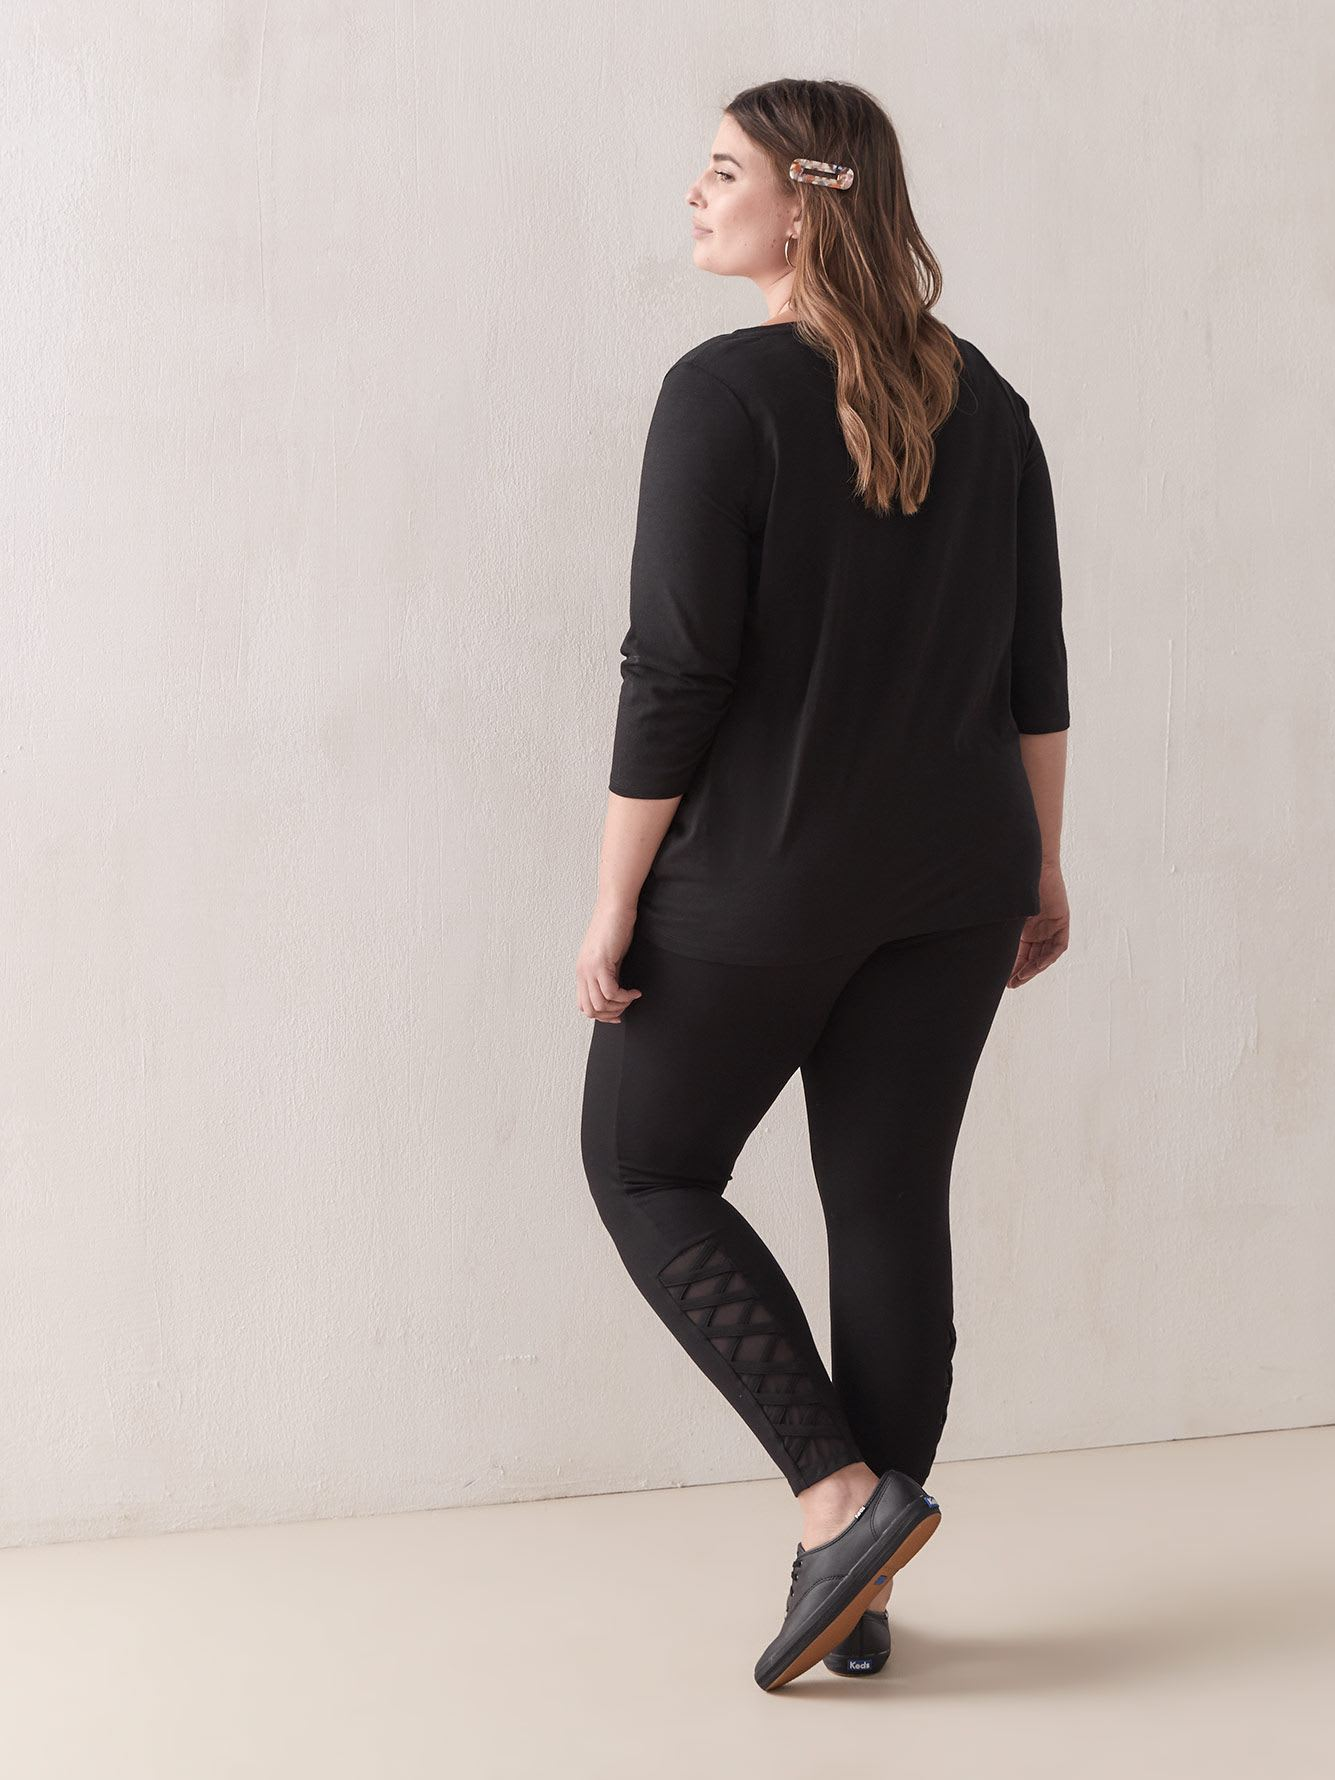 Leggings with Mesh Inserts and Lacing Detail - Addition Elle